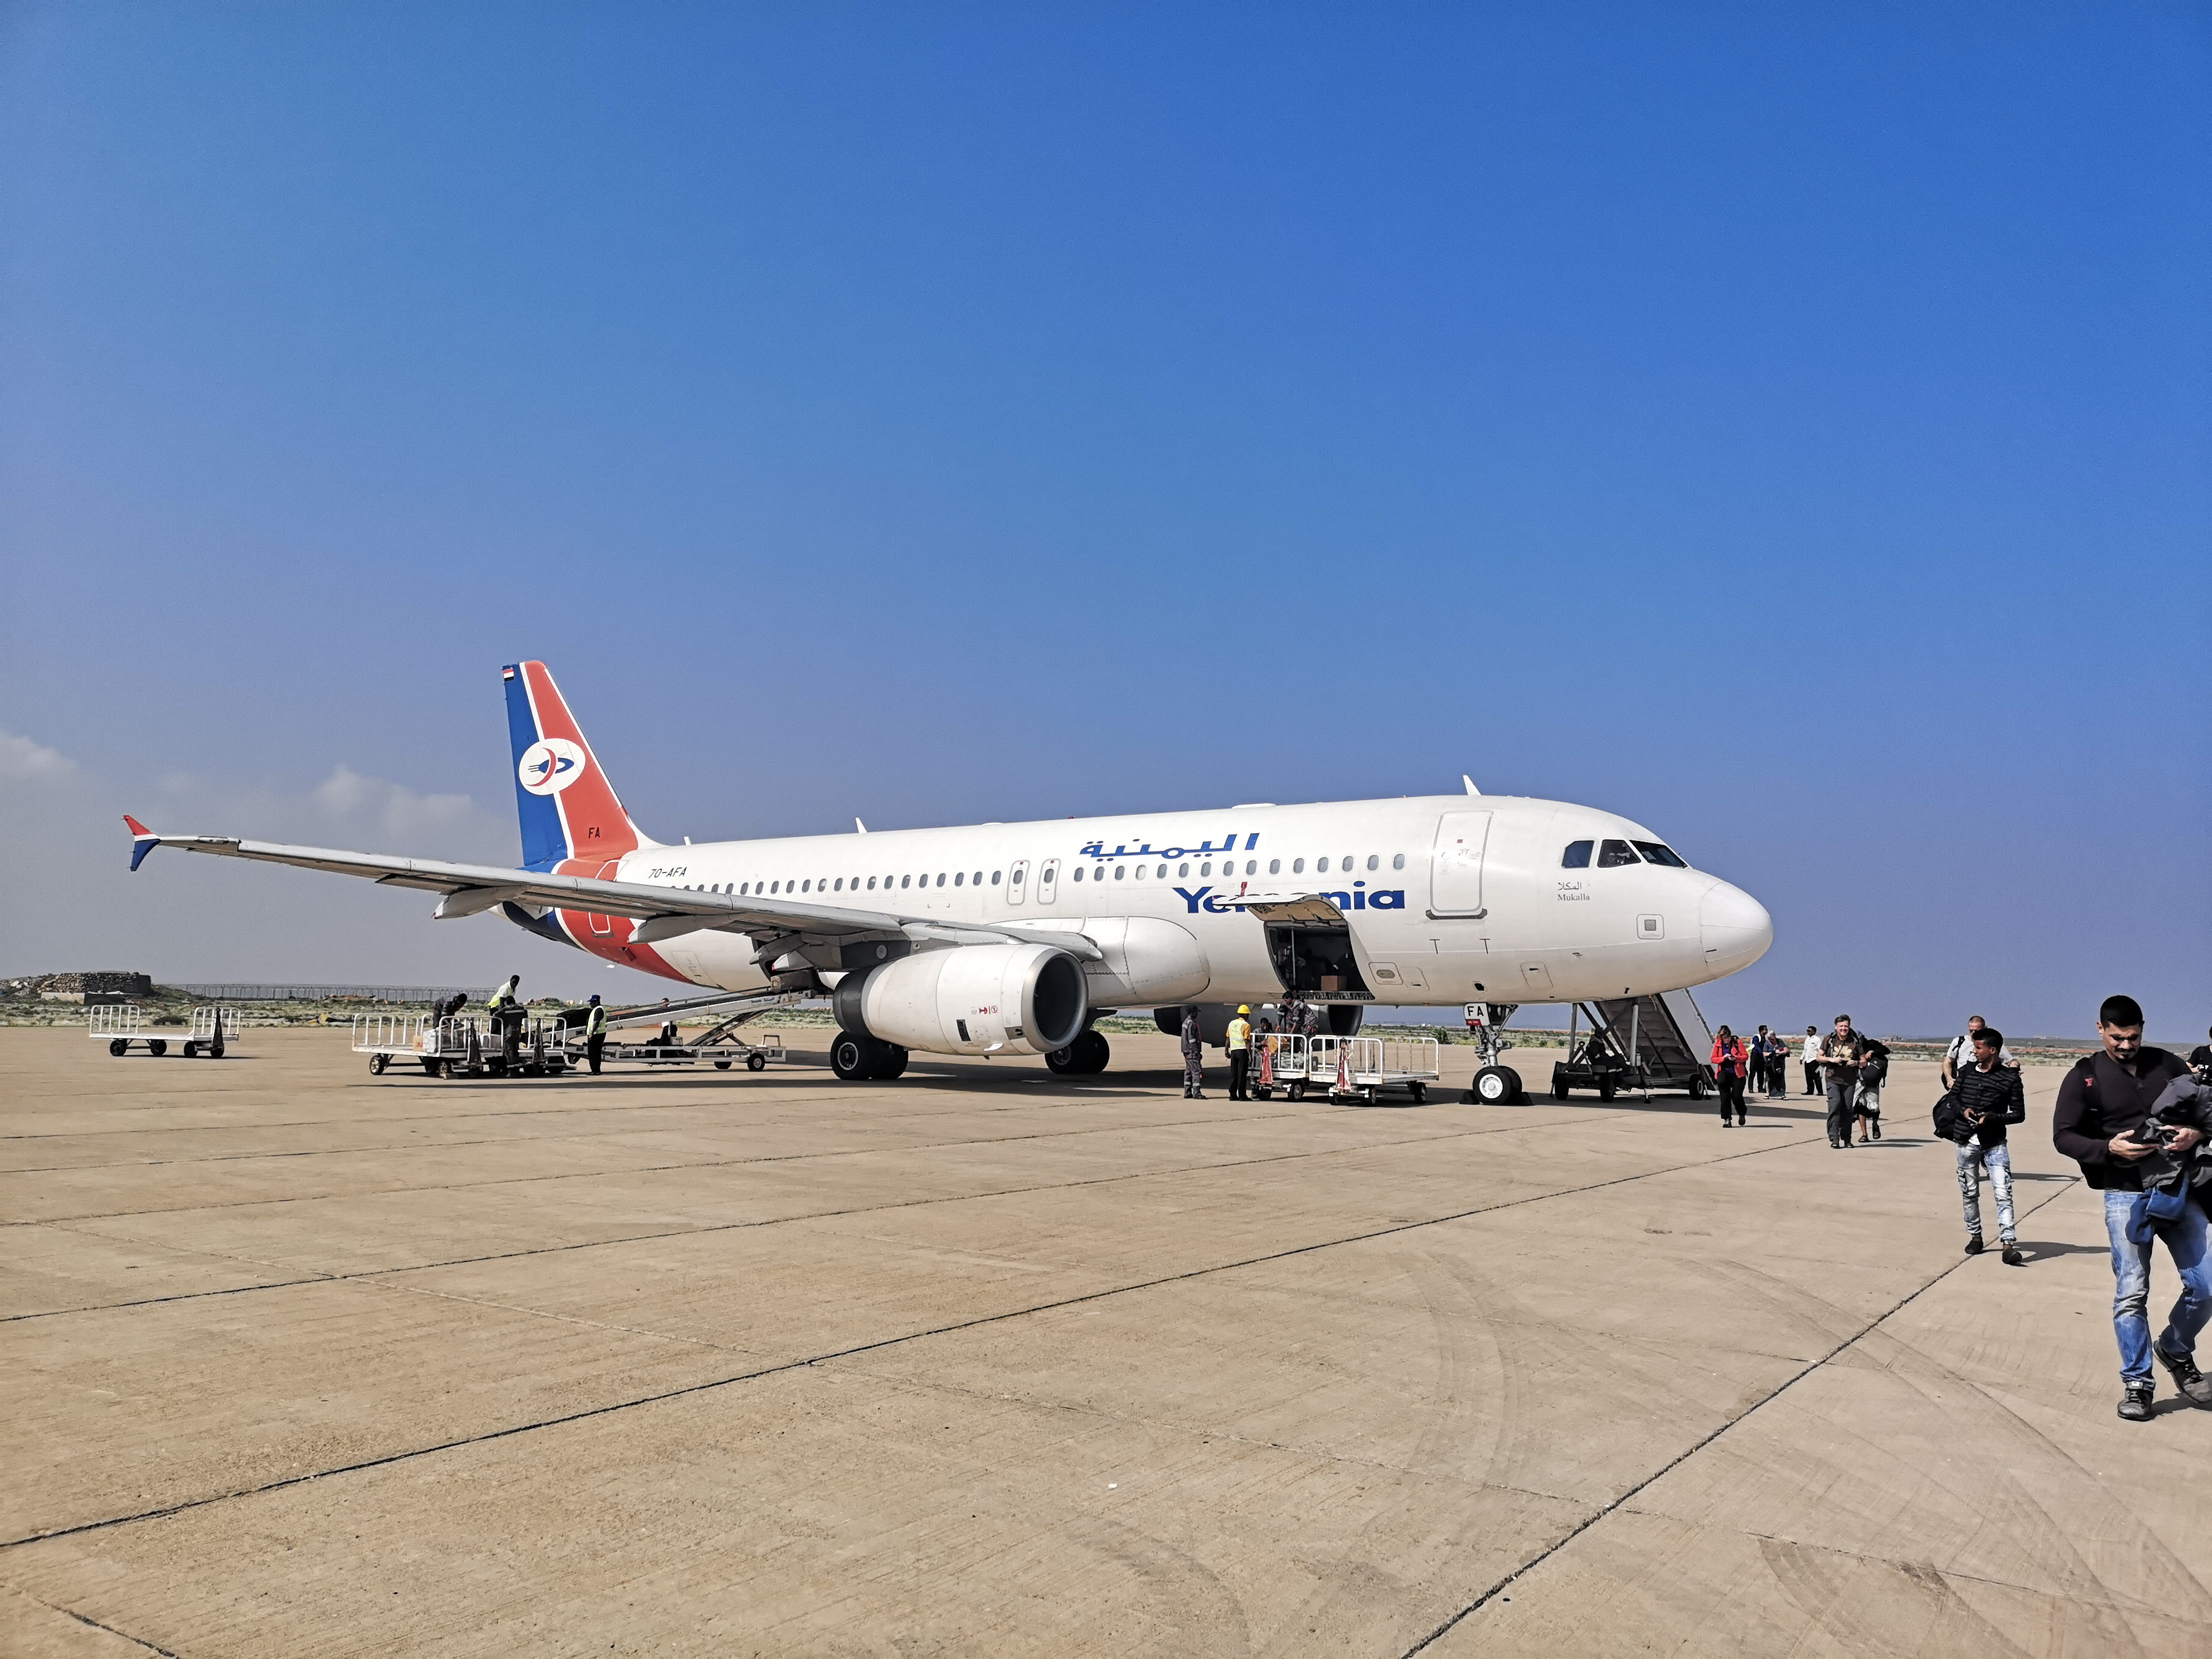 Yemen Airlines plane service from Socotra to Cairo